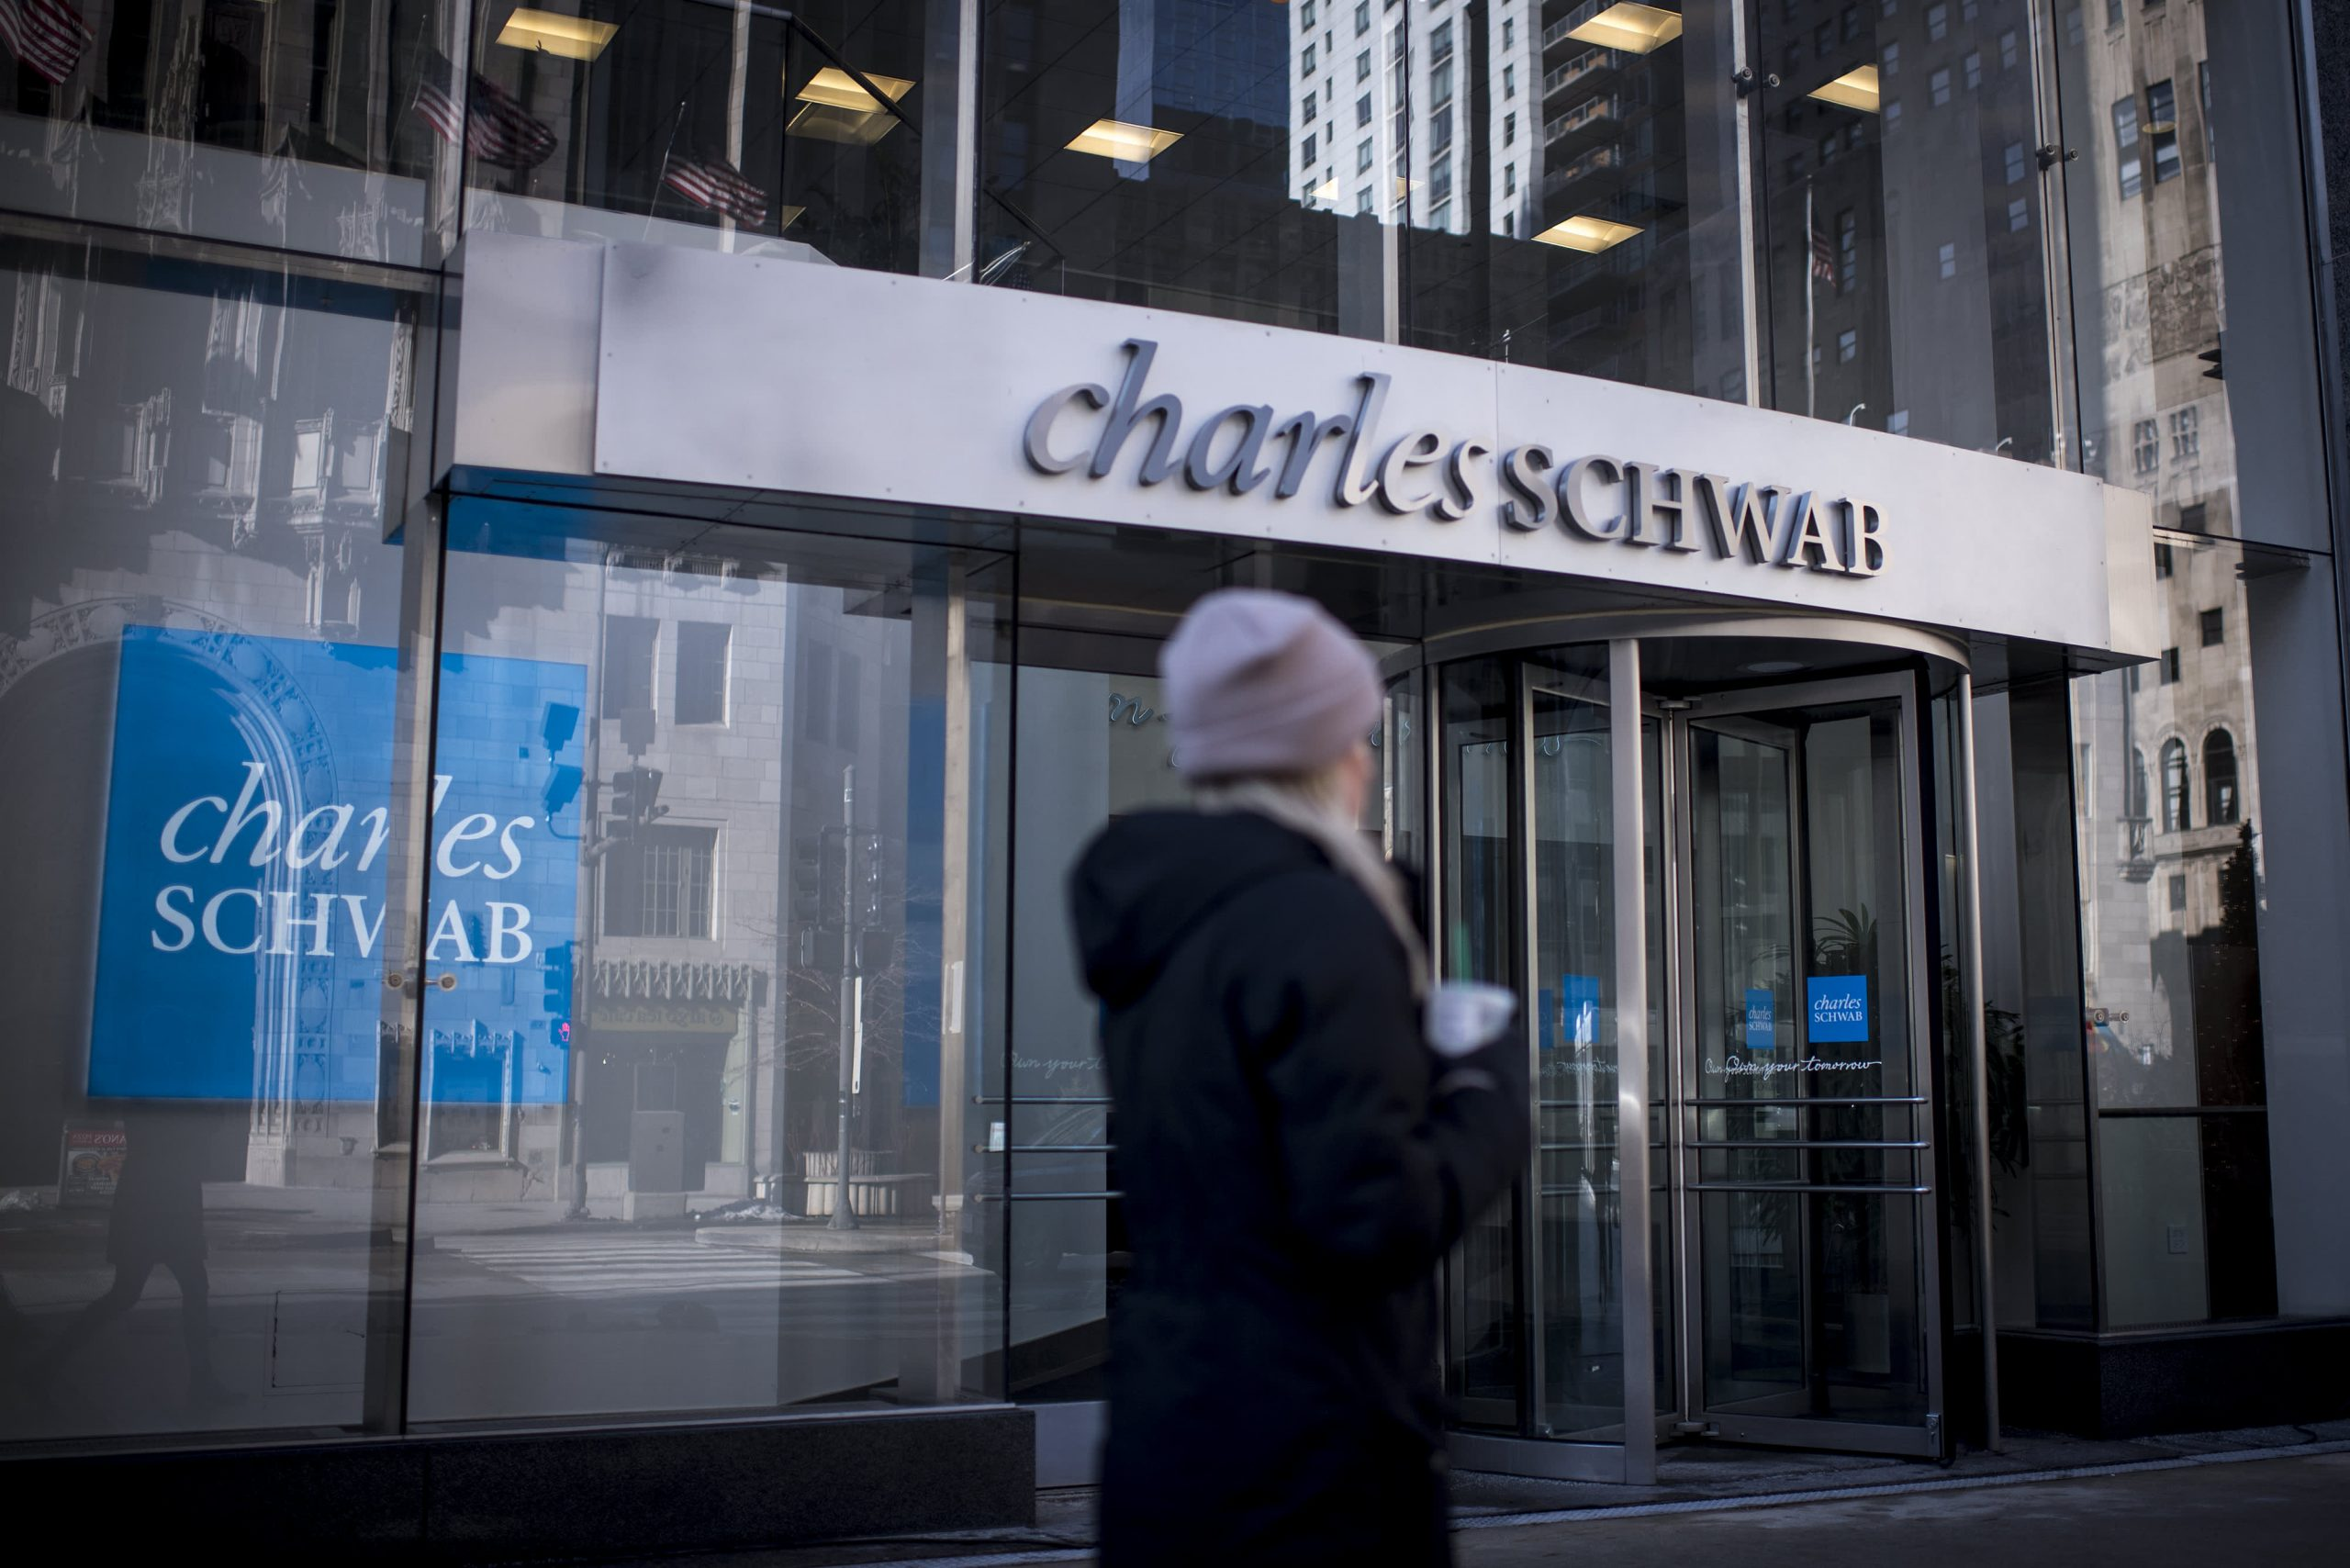 charles-schwab-lays-off-200-more-employees-amid-td-ameritrade-integration